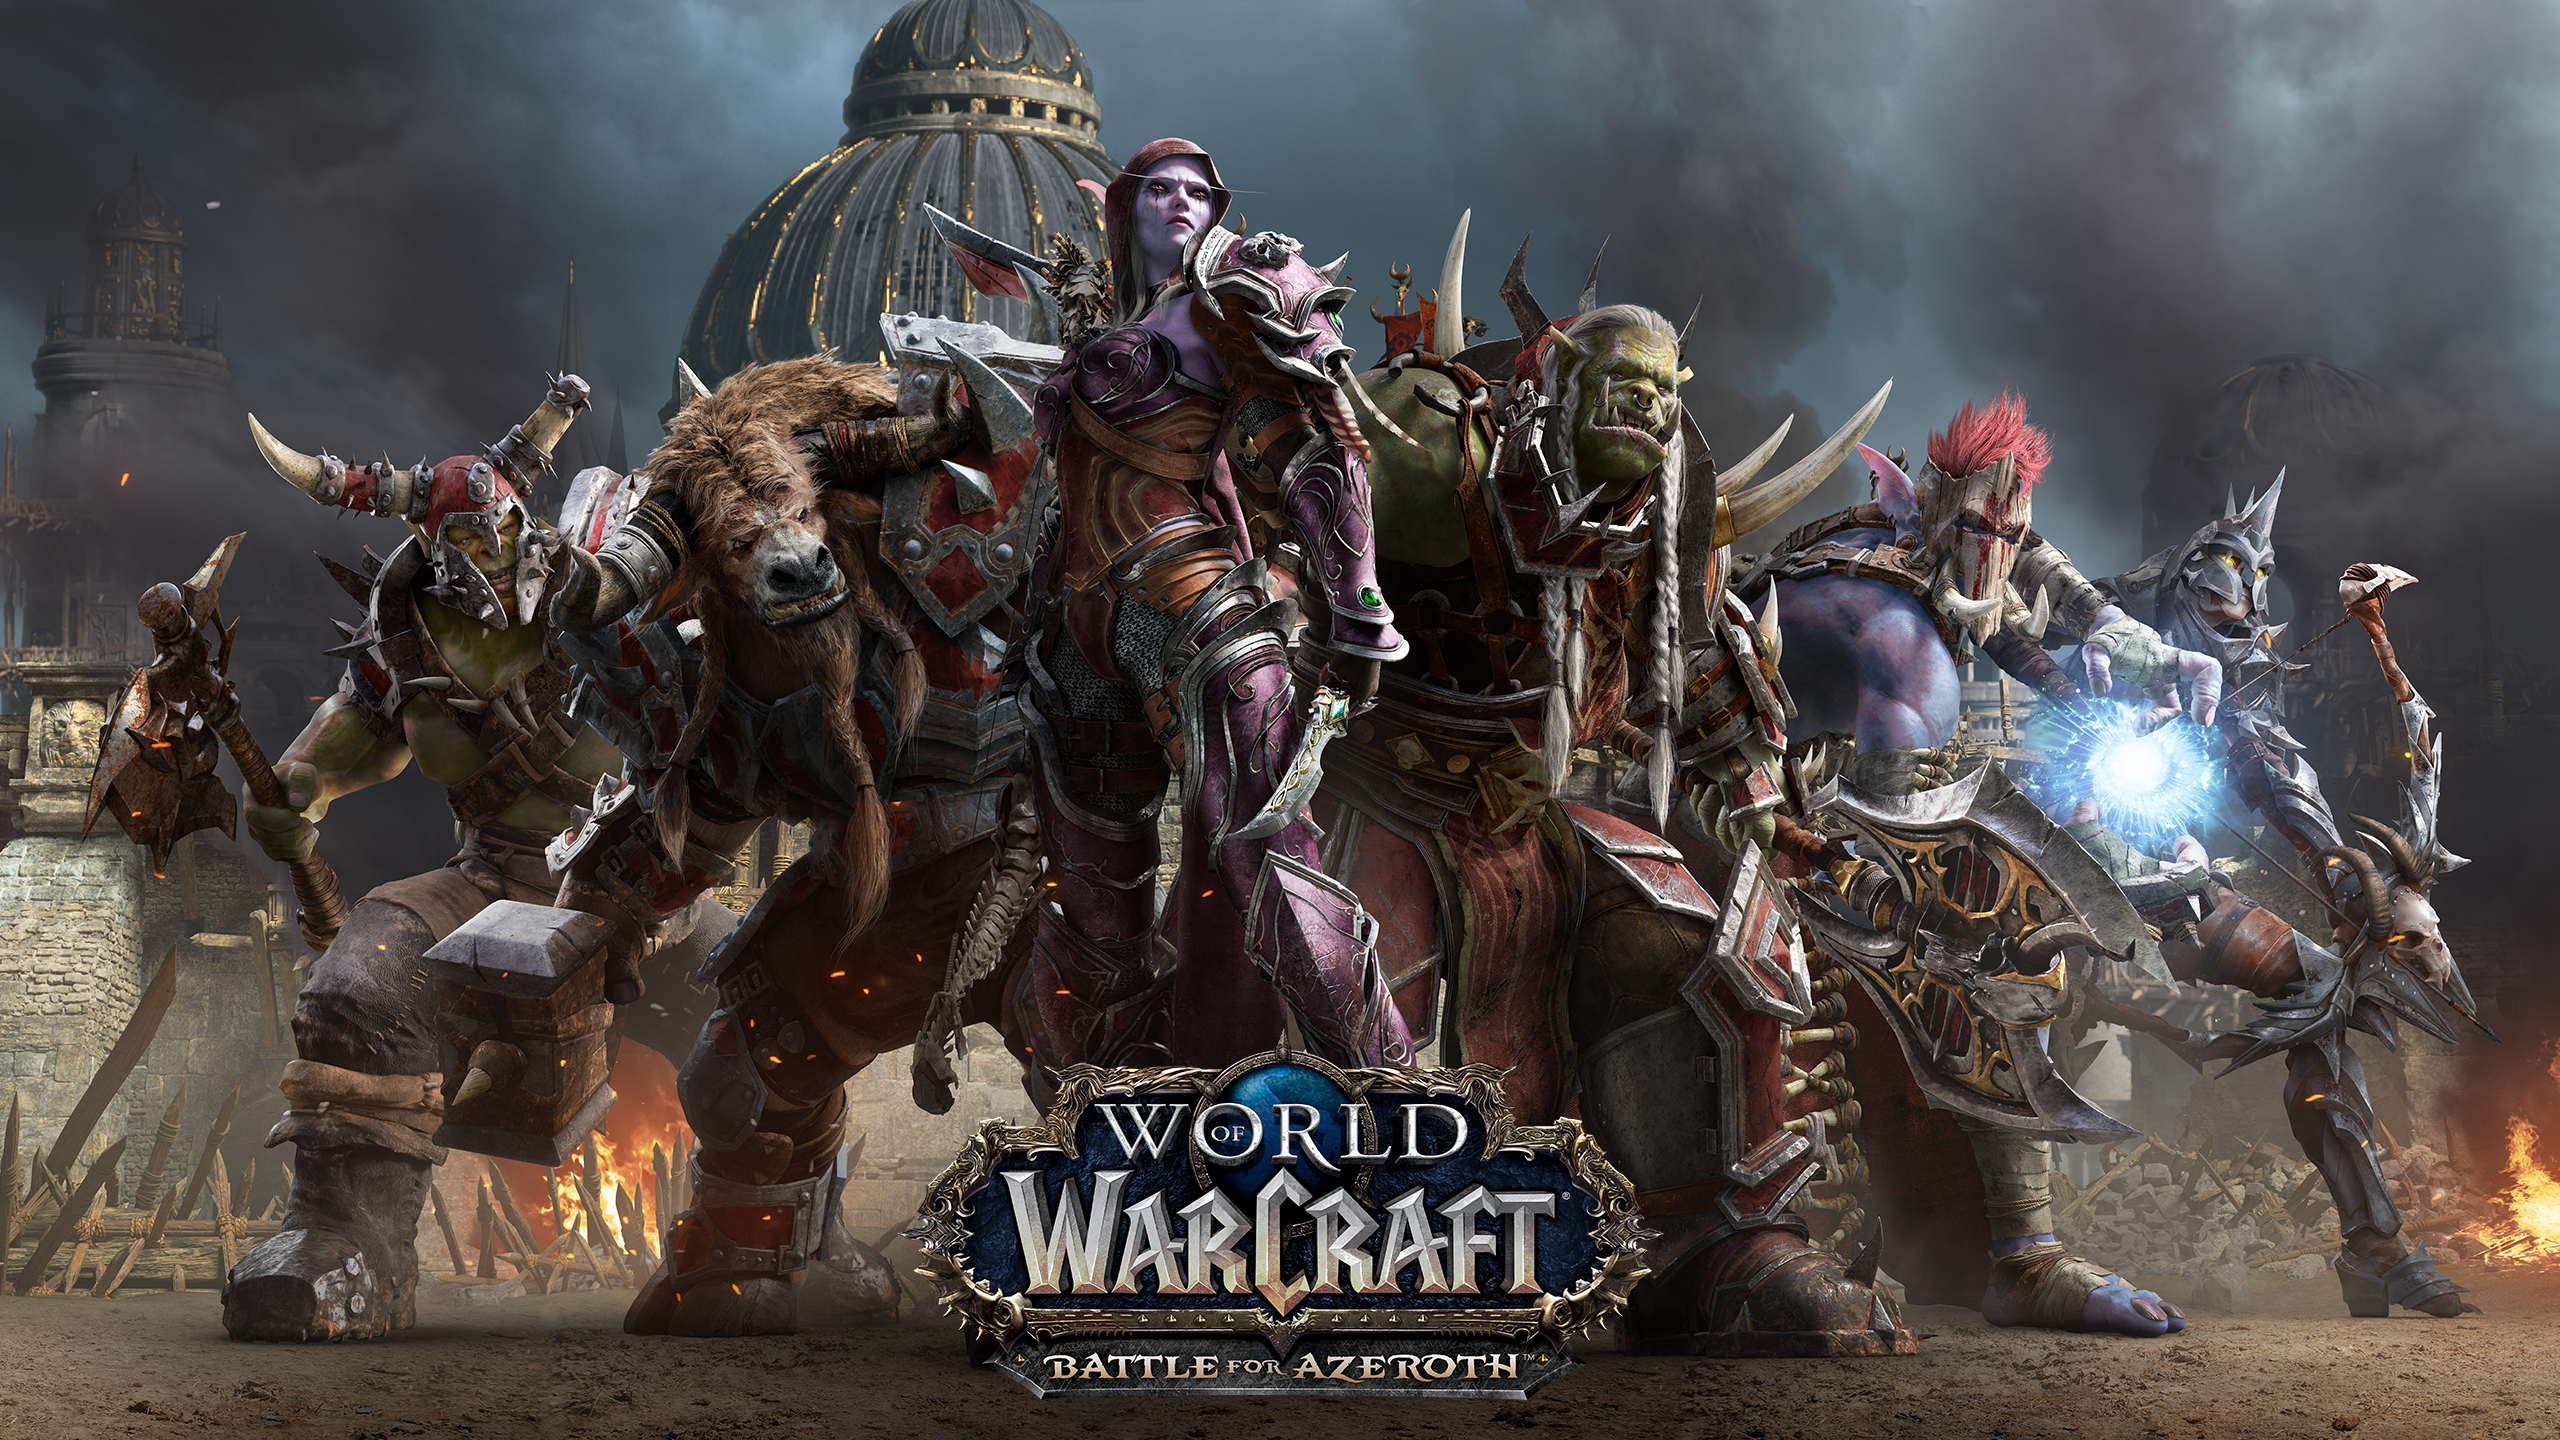 Battle for Azeroth Release Date